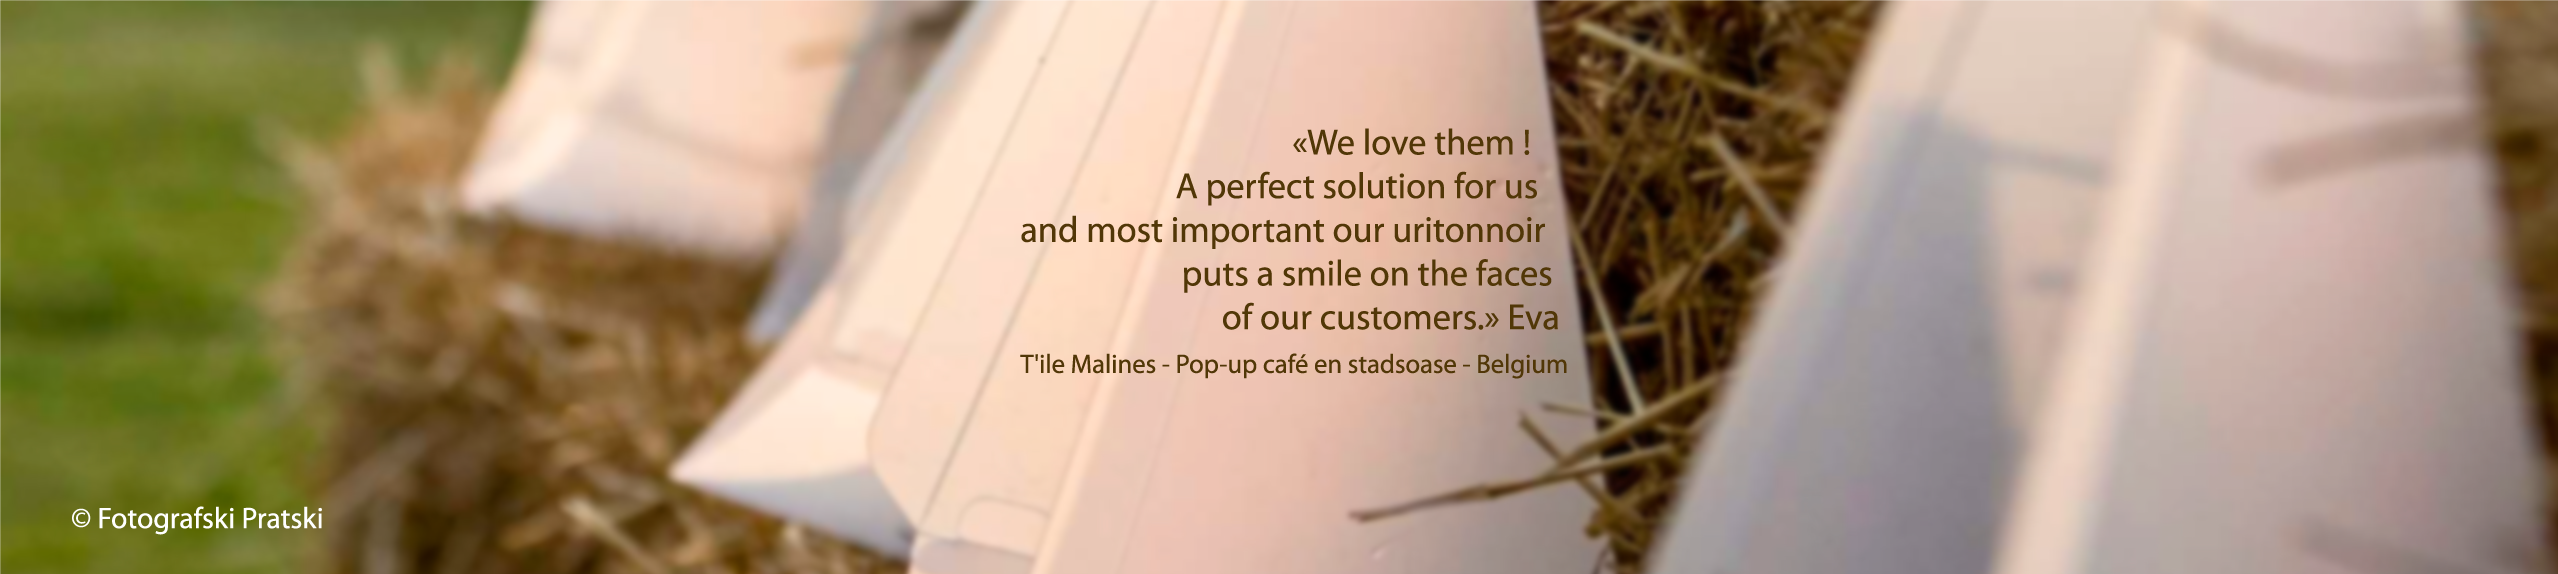 Tile-malines1